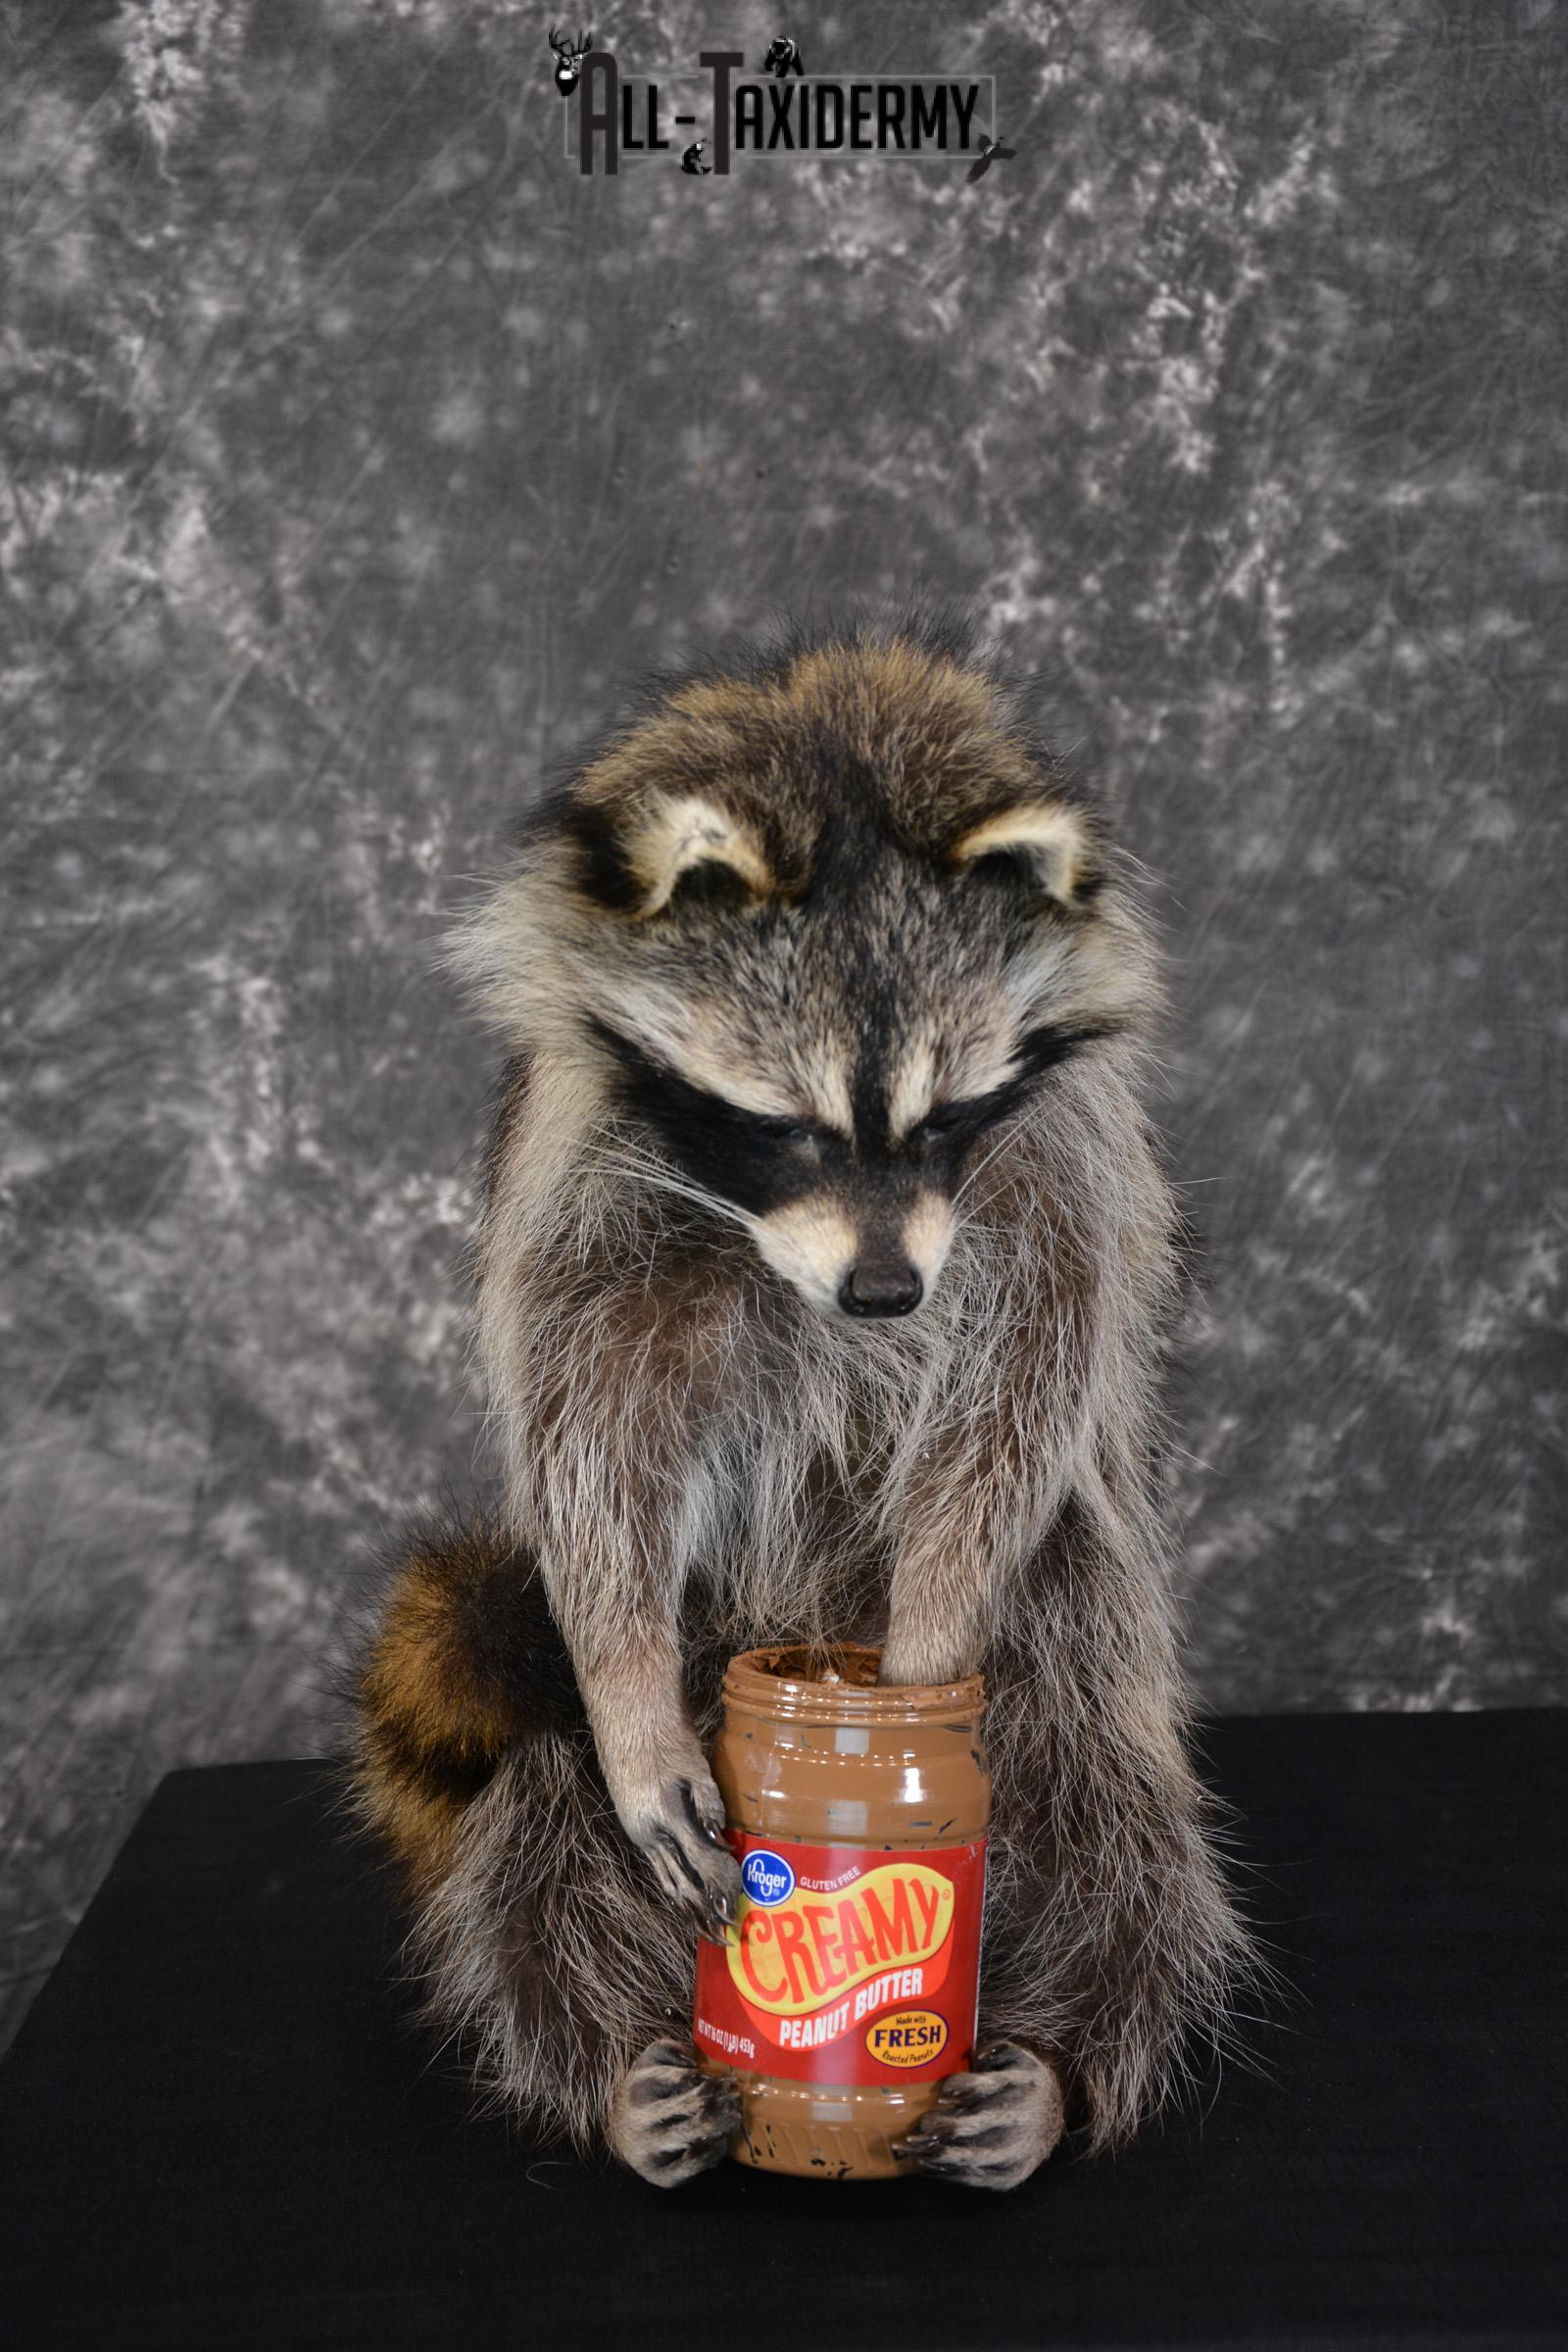 Raccoon holding peanut butter jar Novelty Taxidermy Mount for sale SKU 1489